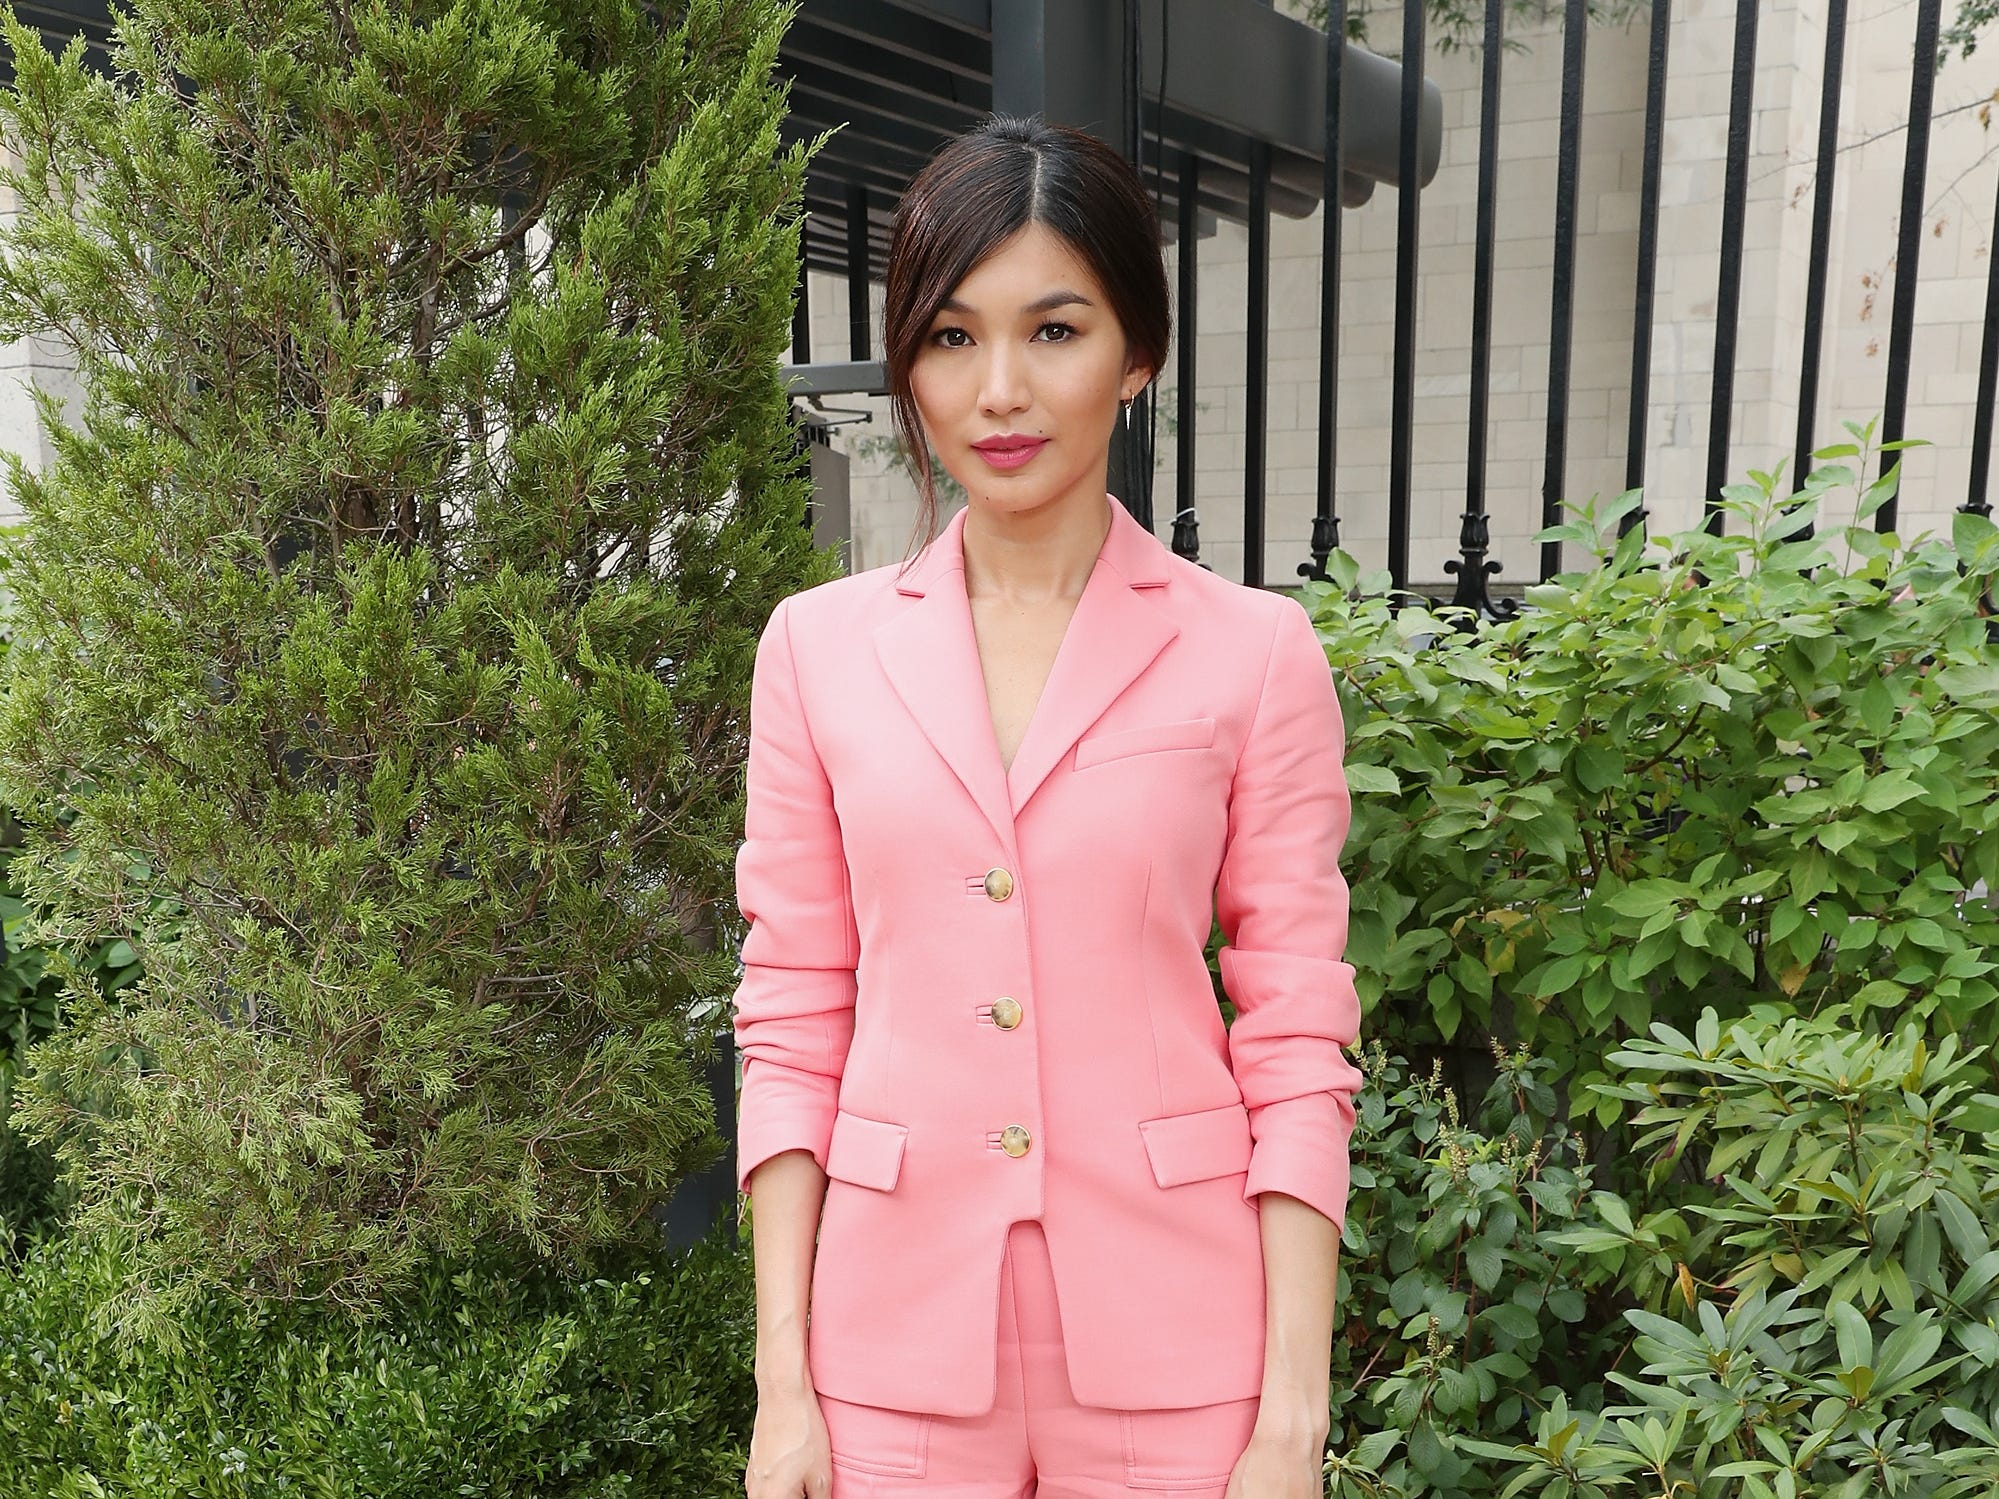 NEW YORK, NY - SEPTEMBER 07: Gemma Chan attends the Tory Burch Spring Summer 2019 Fashion Show at Cooper Hewitt, Smithsonian Design Museum on September 7, 2018 in New York City.  (Photo by Cindy Ord/Getty Images for Tory Burch) ORG XMIT: 775216252 ORIG FILE ID: 1028459528